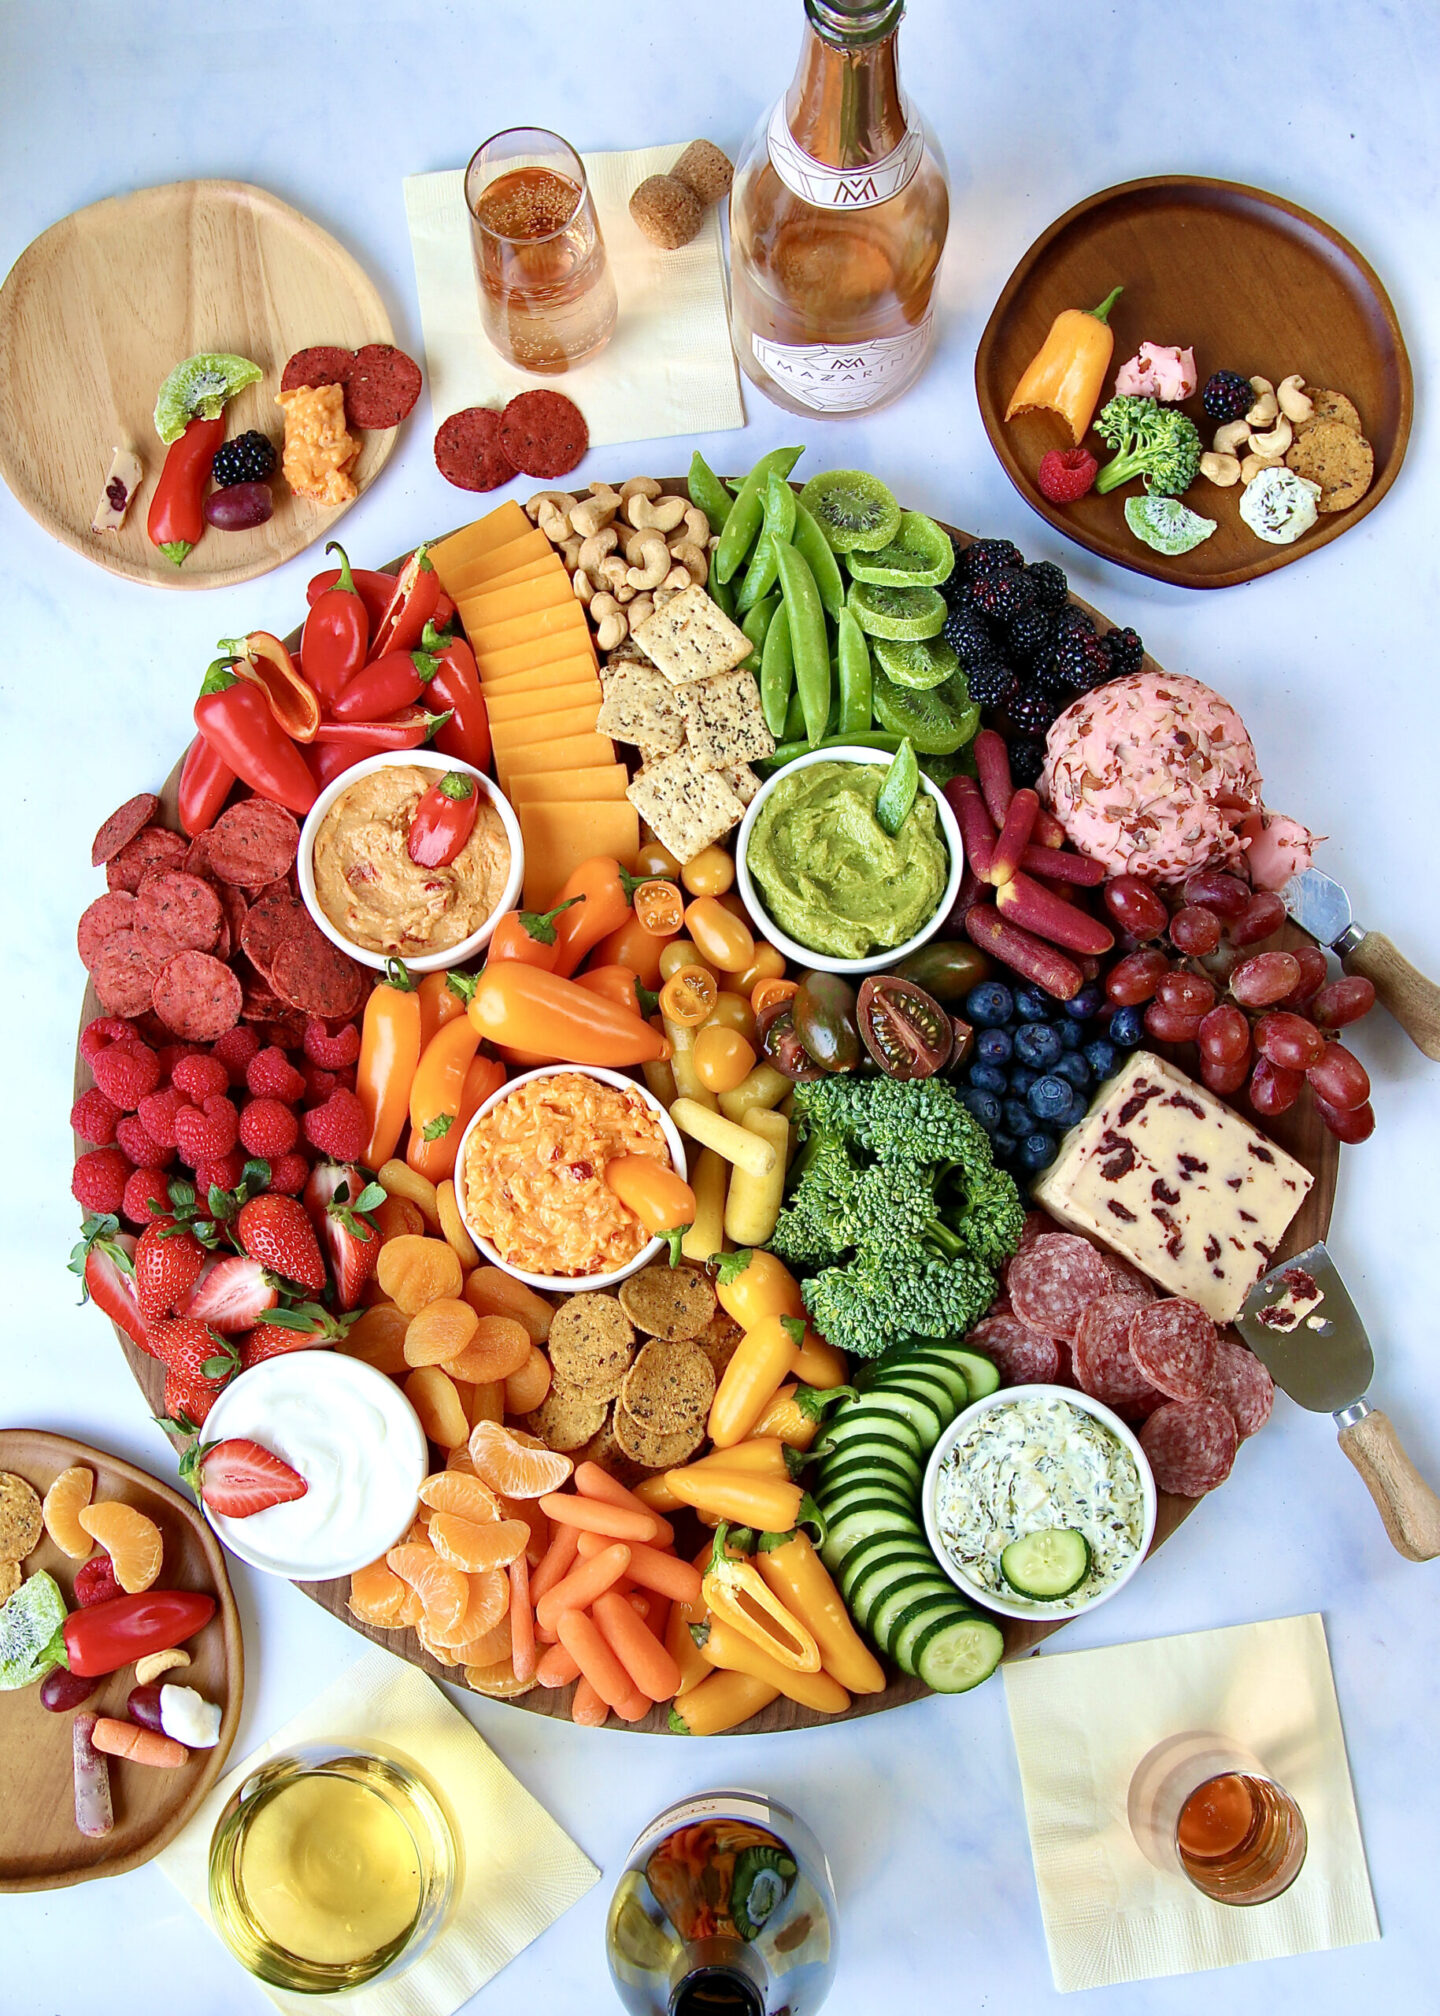 Rainbow colors on this pleasing and appetizing spring snack board by Maegan Brown of The Baker Mama! #snackboards #grazeboards #appetizers #rainbow